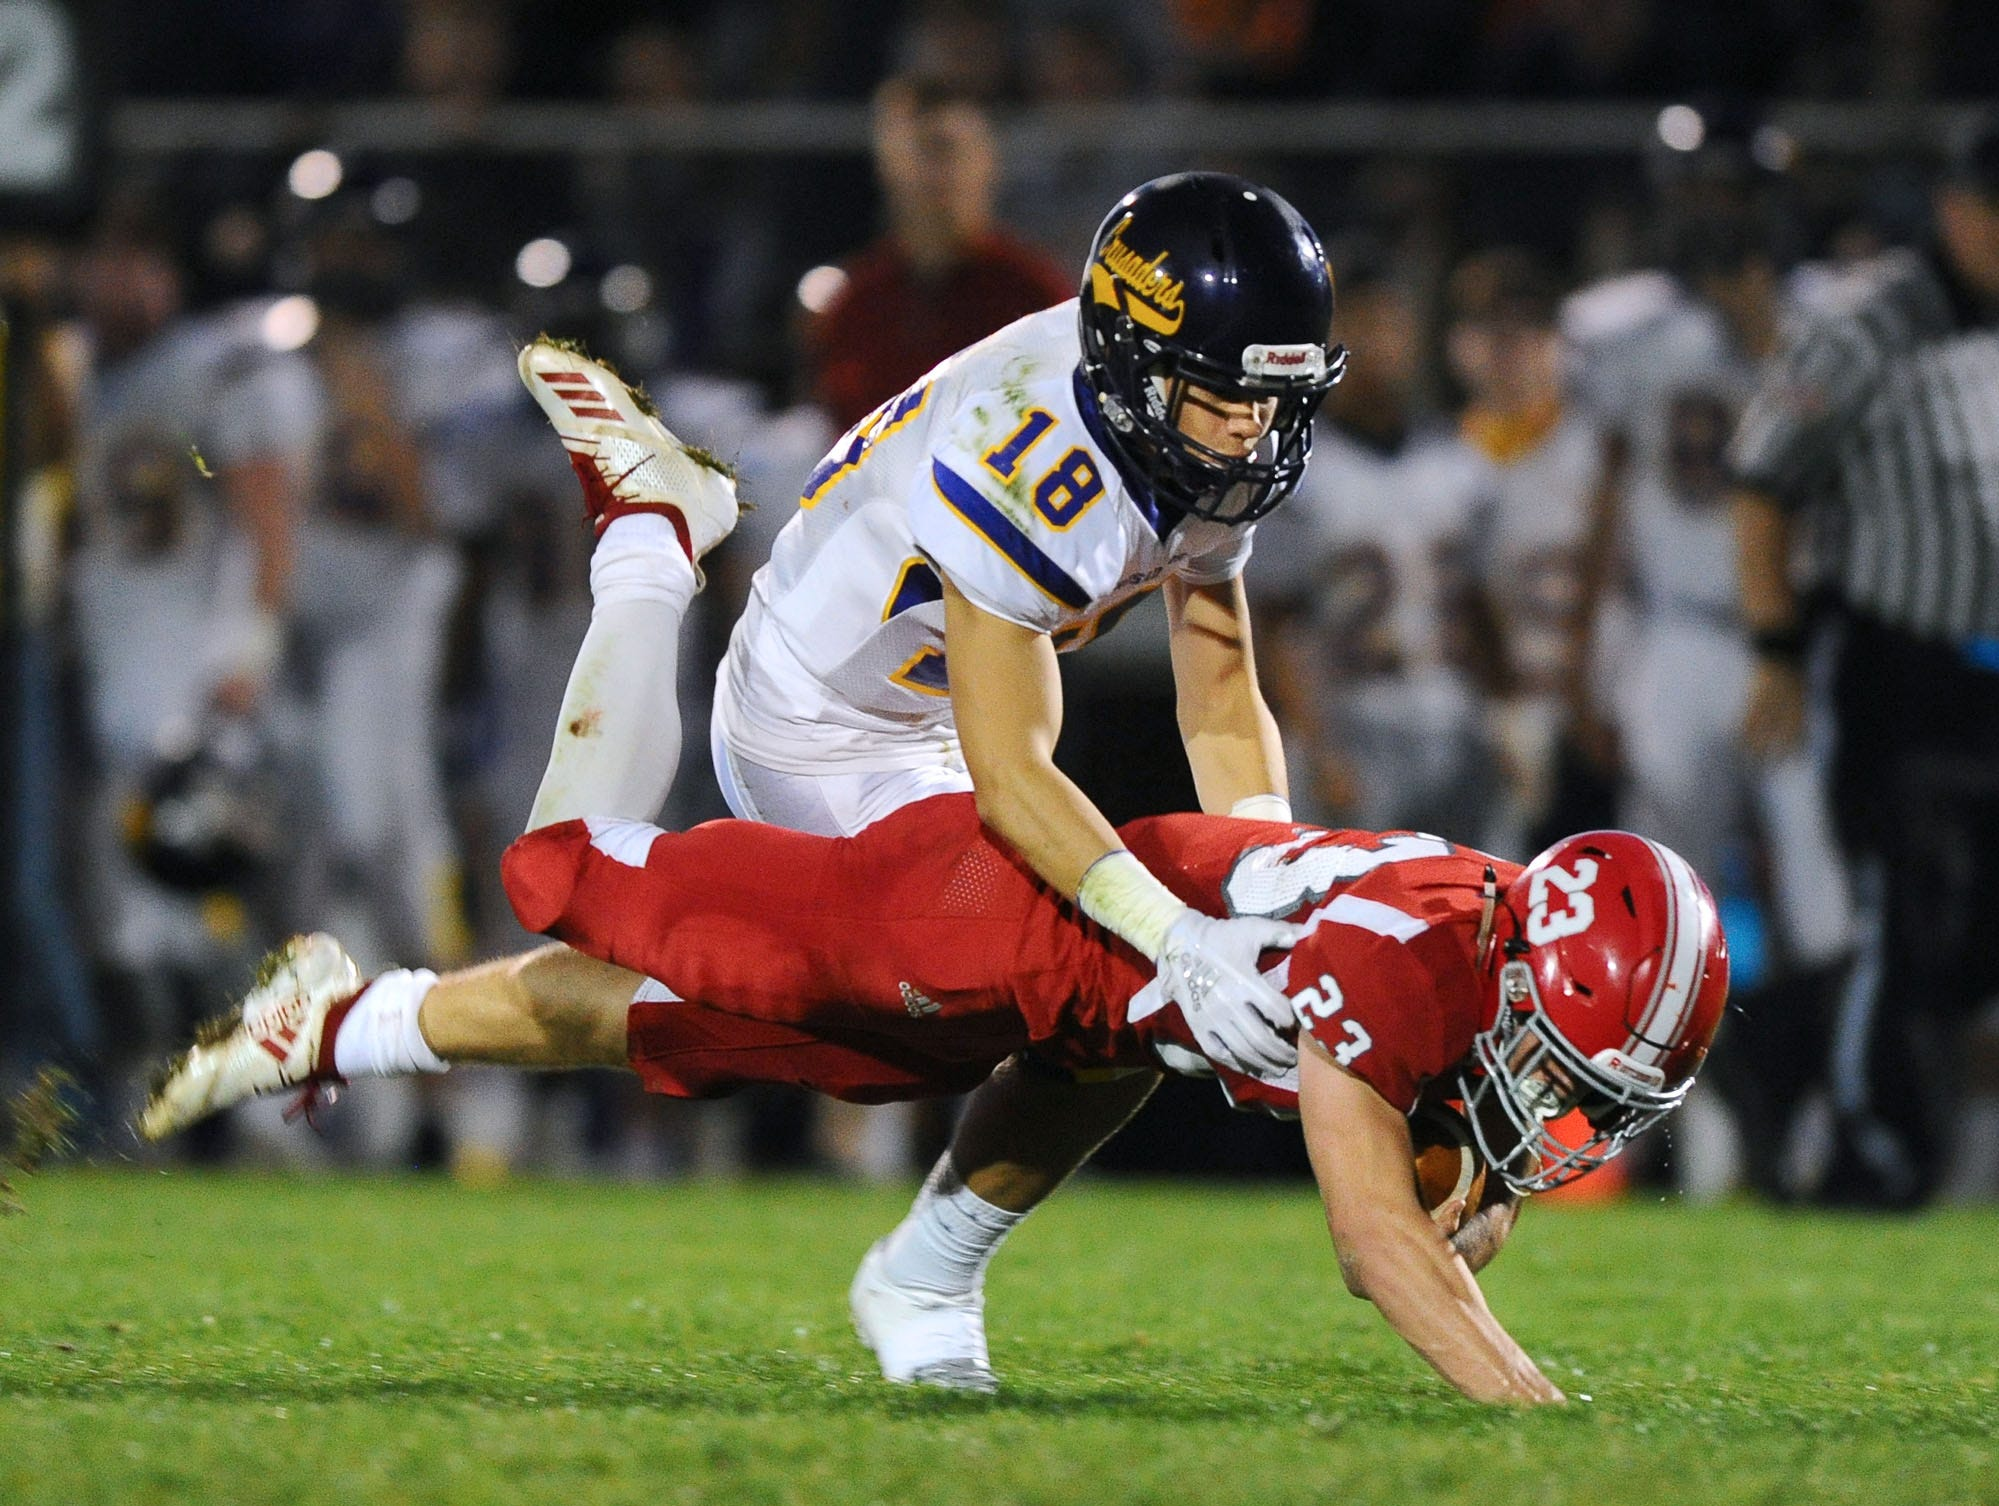 Annville Cleona's Evan Heilman (23) picks up a 1st.down as he is stopped by Lancaster Catholic's Luke Wetherhold (18) during the first quarter of Friday night's game against Lancaster Catholic.